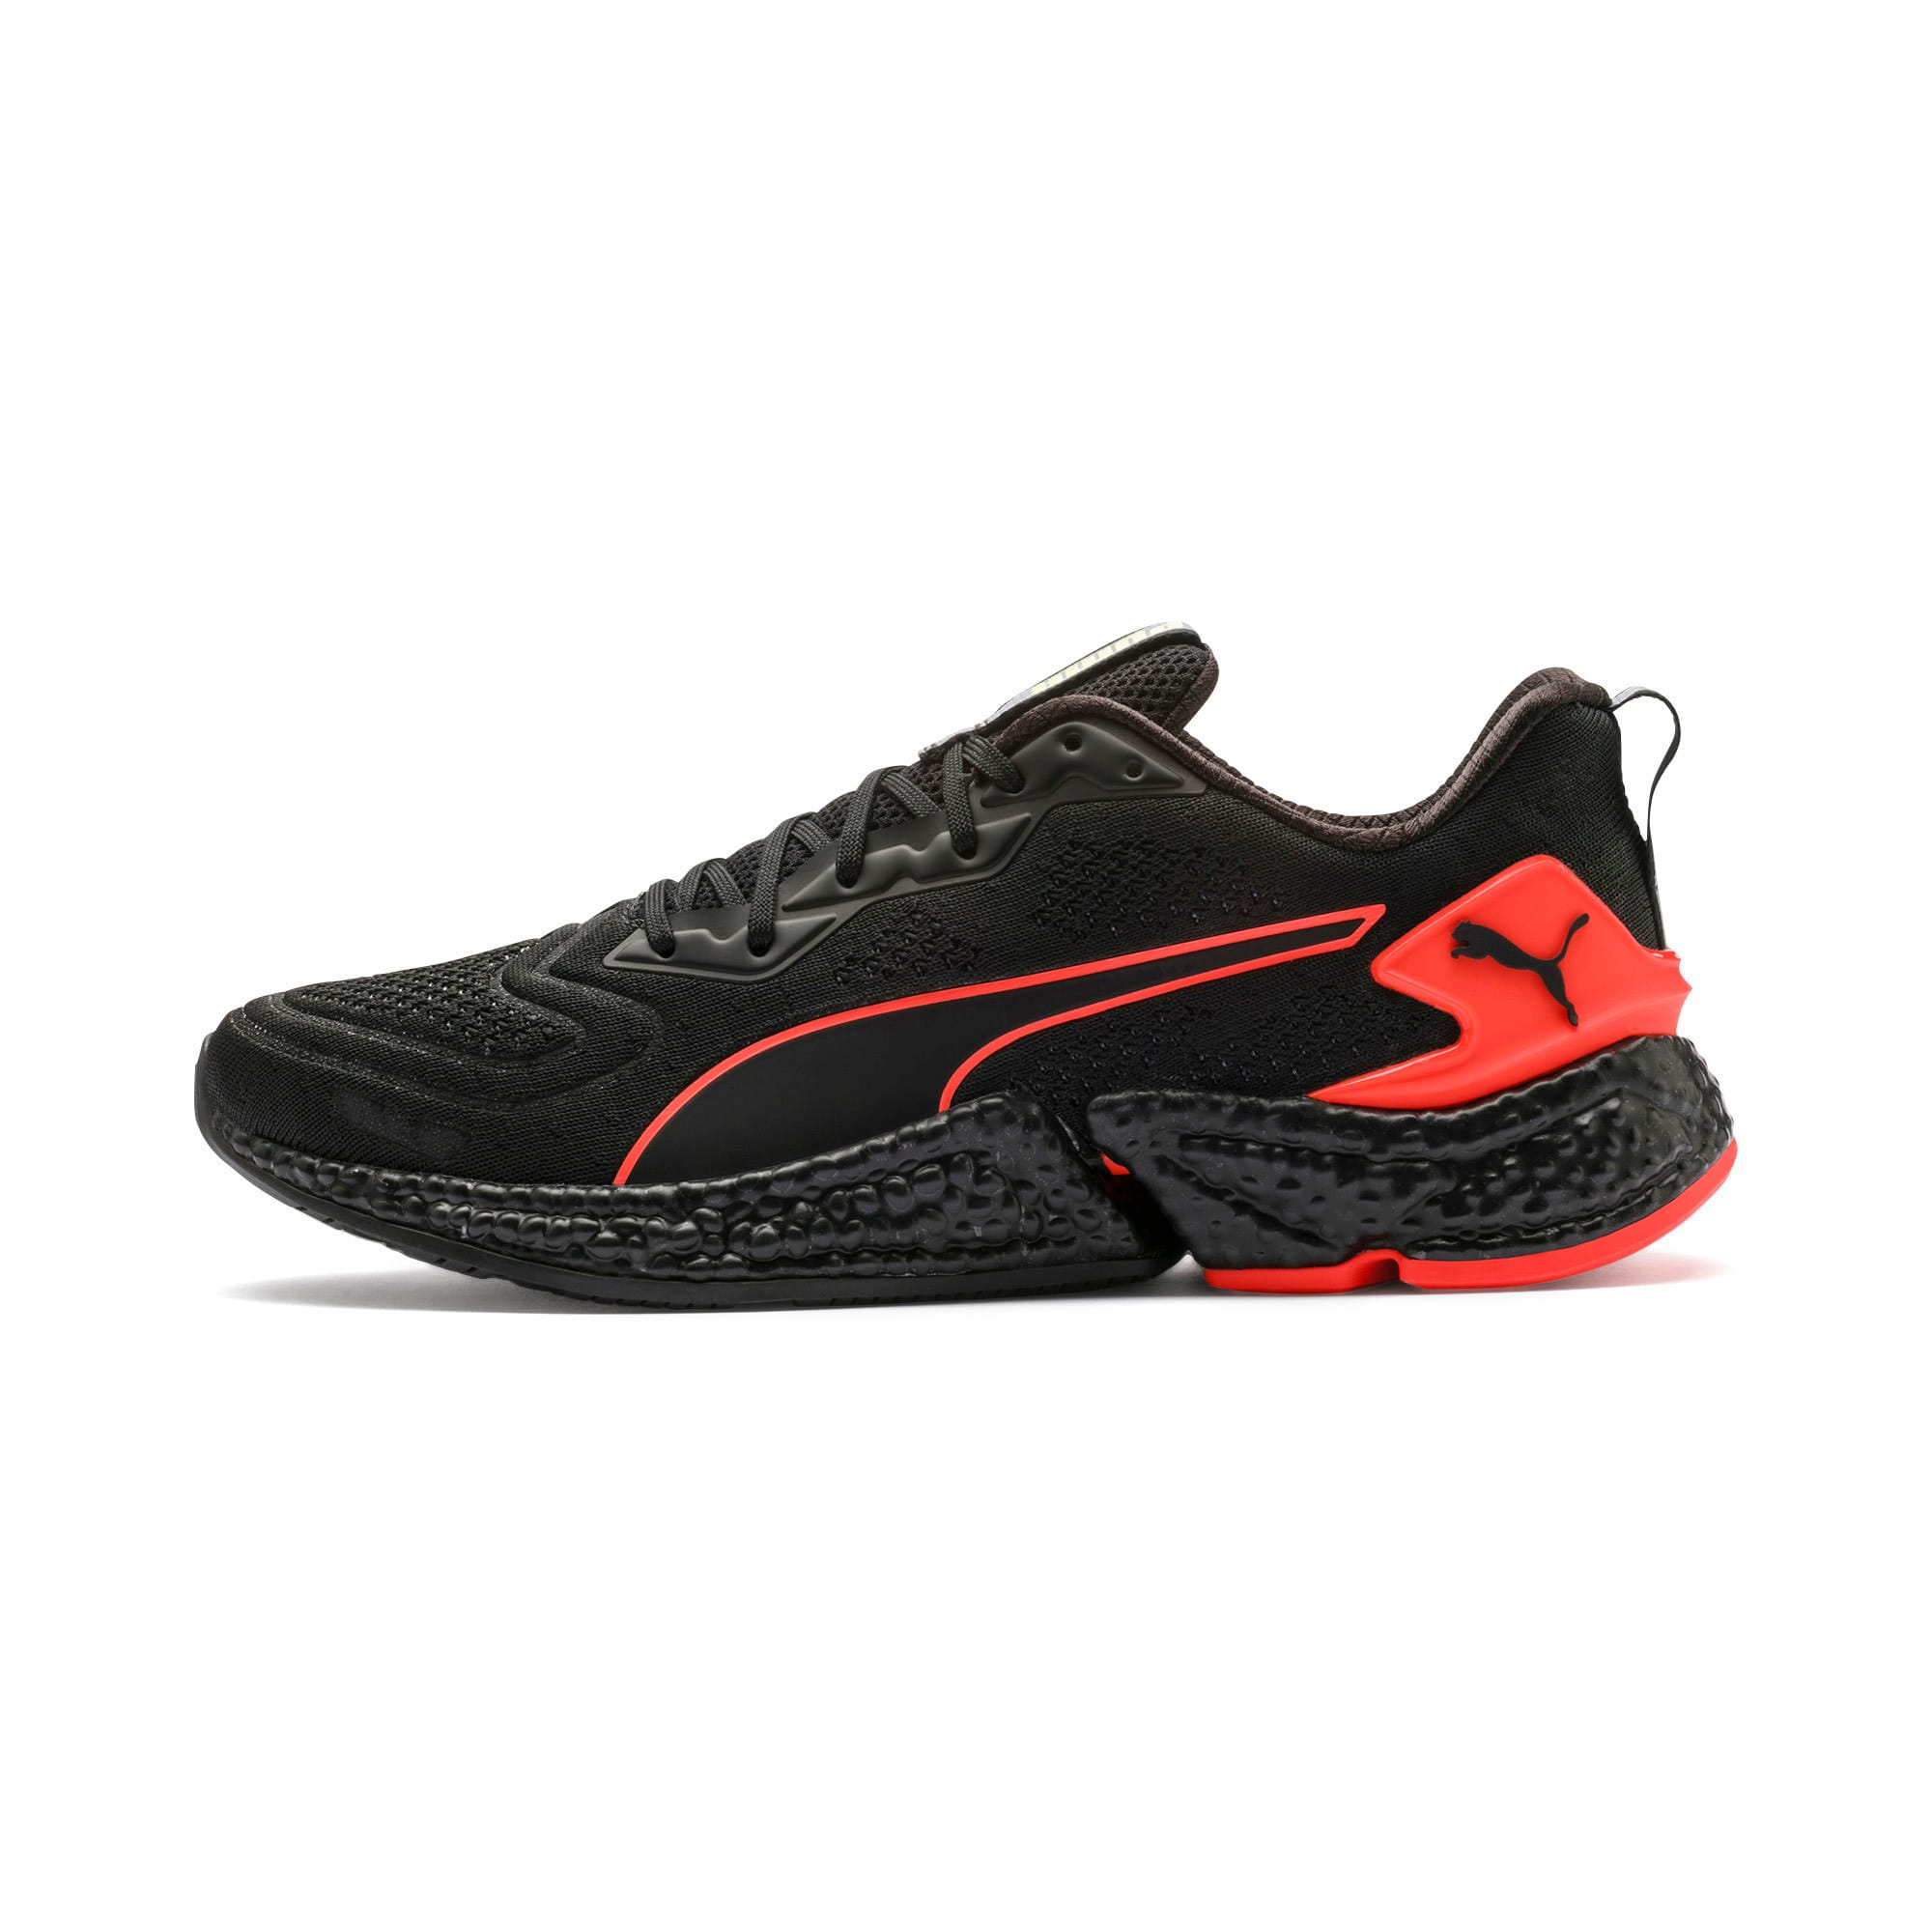 Thumbnail 1 of Chaussure de course HYBID SPEED Orbiter pour homme, Black-Nrgy Red-Yellow, medium